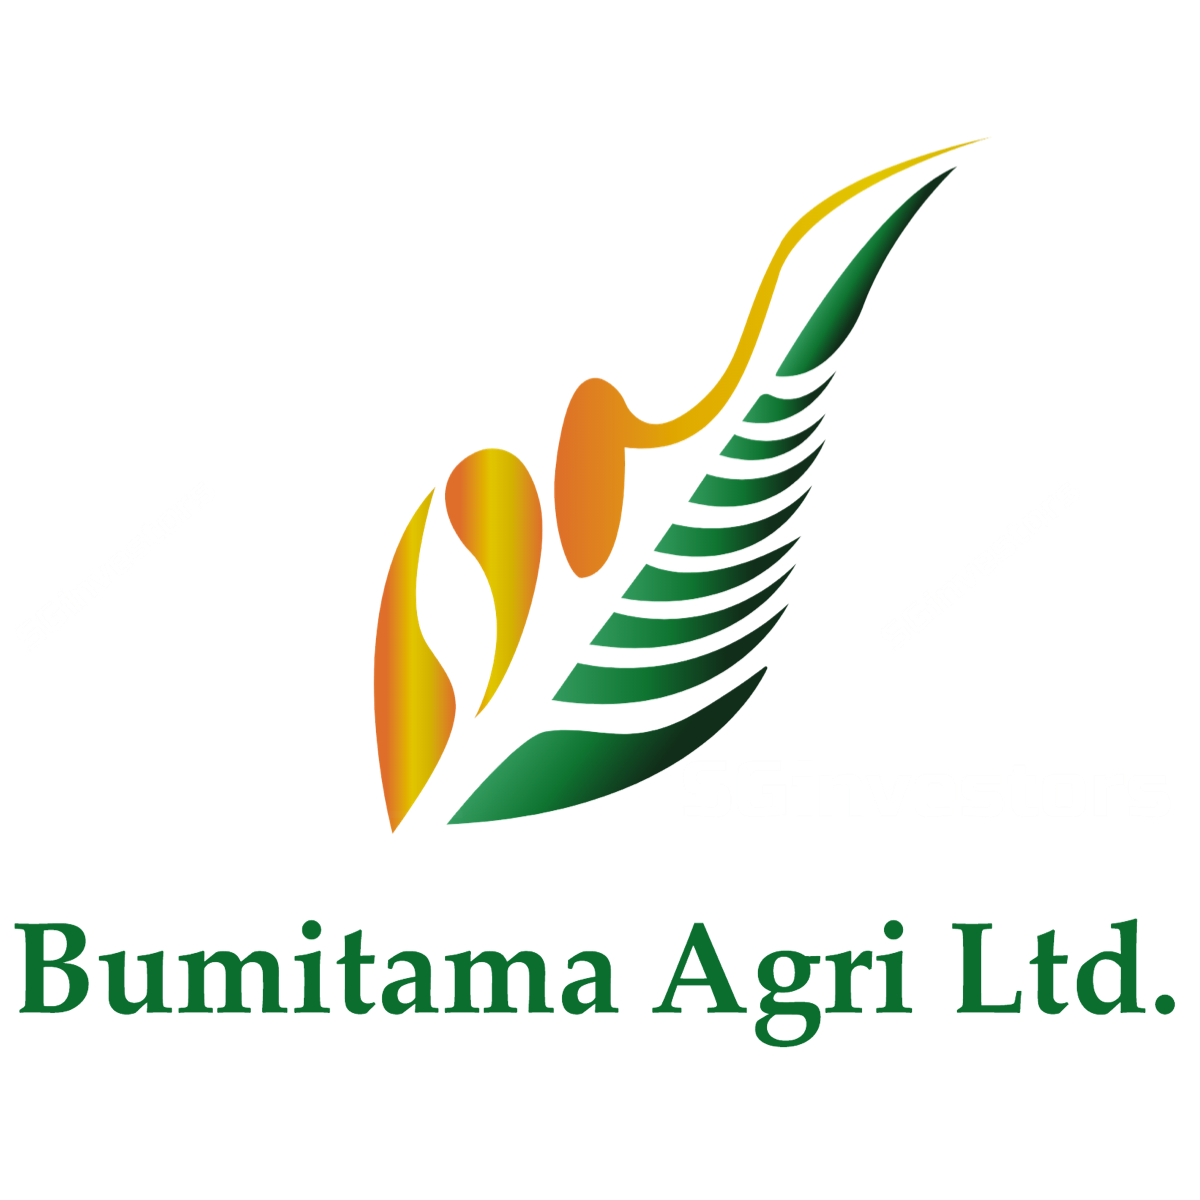 Bumitama Agri - RHB Invest 2017-12-19: Adjusting For Higher CPO Price Assumptions